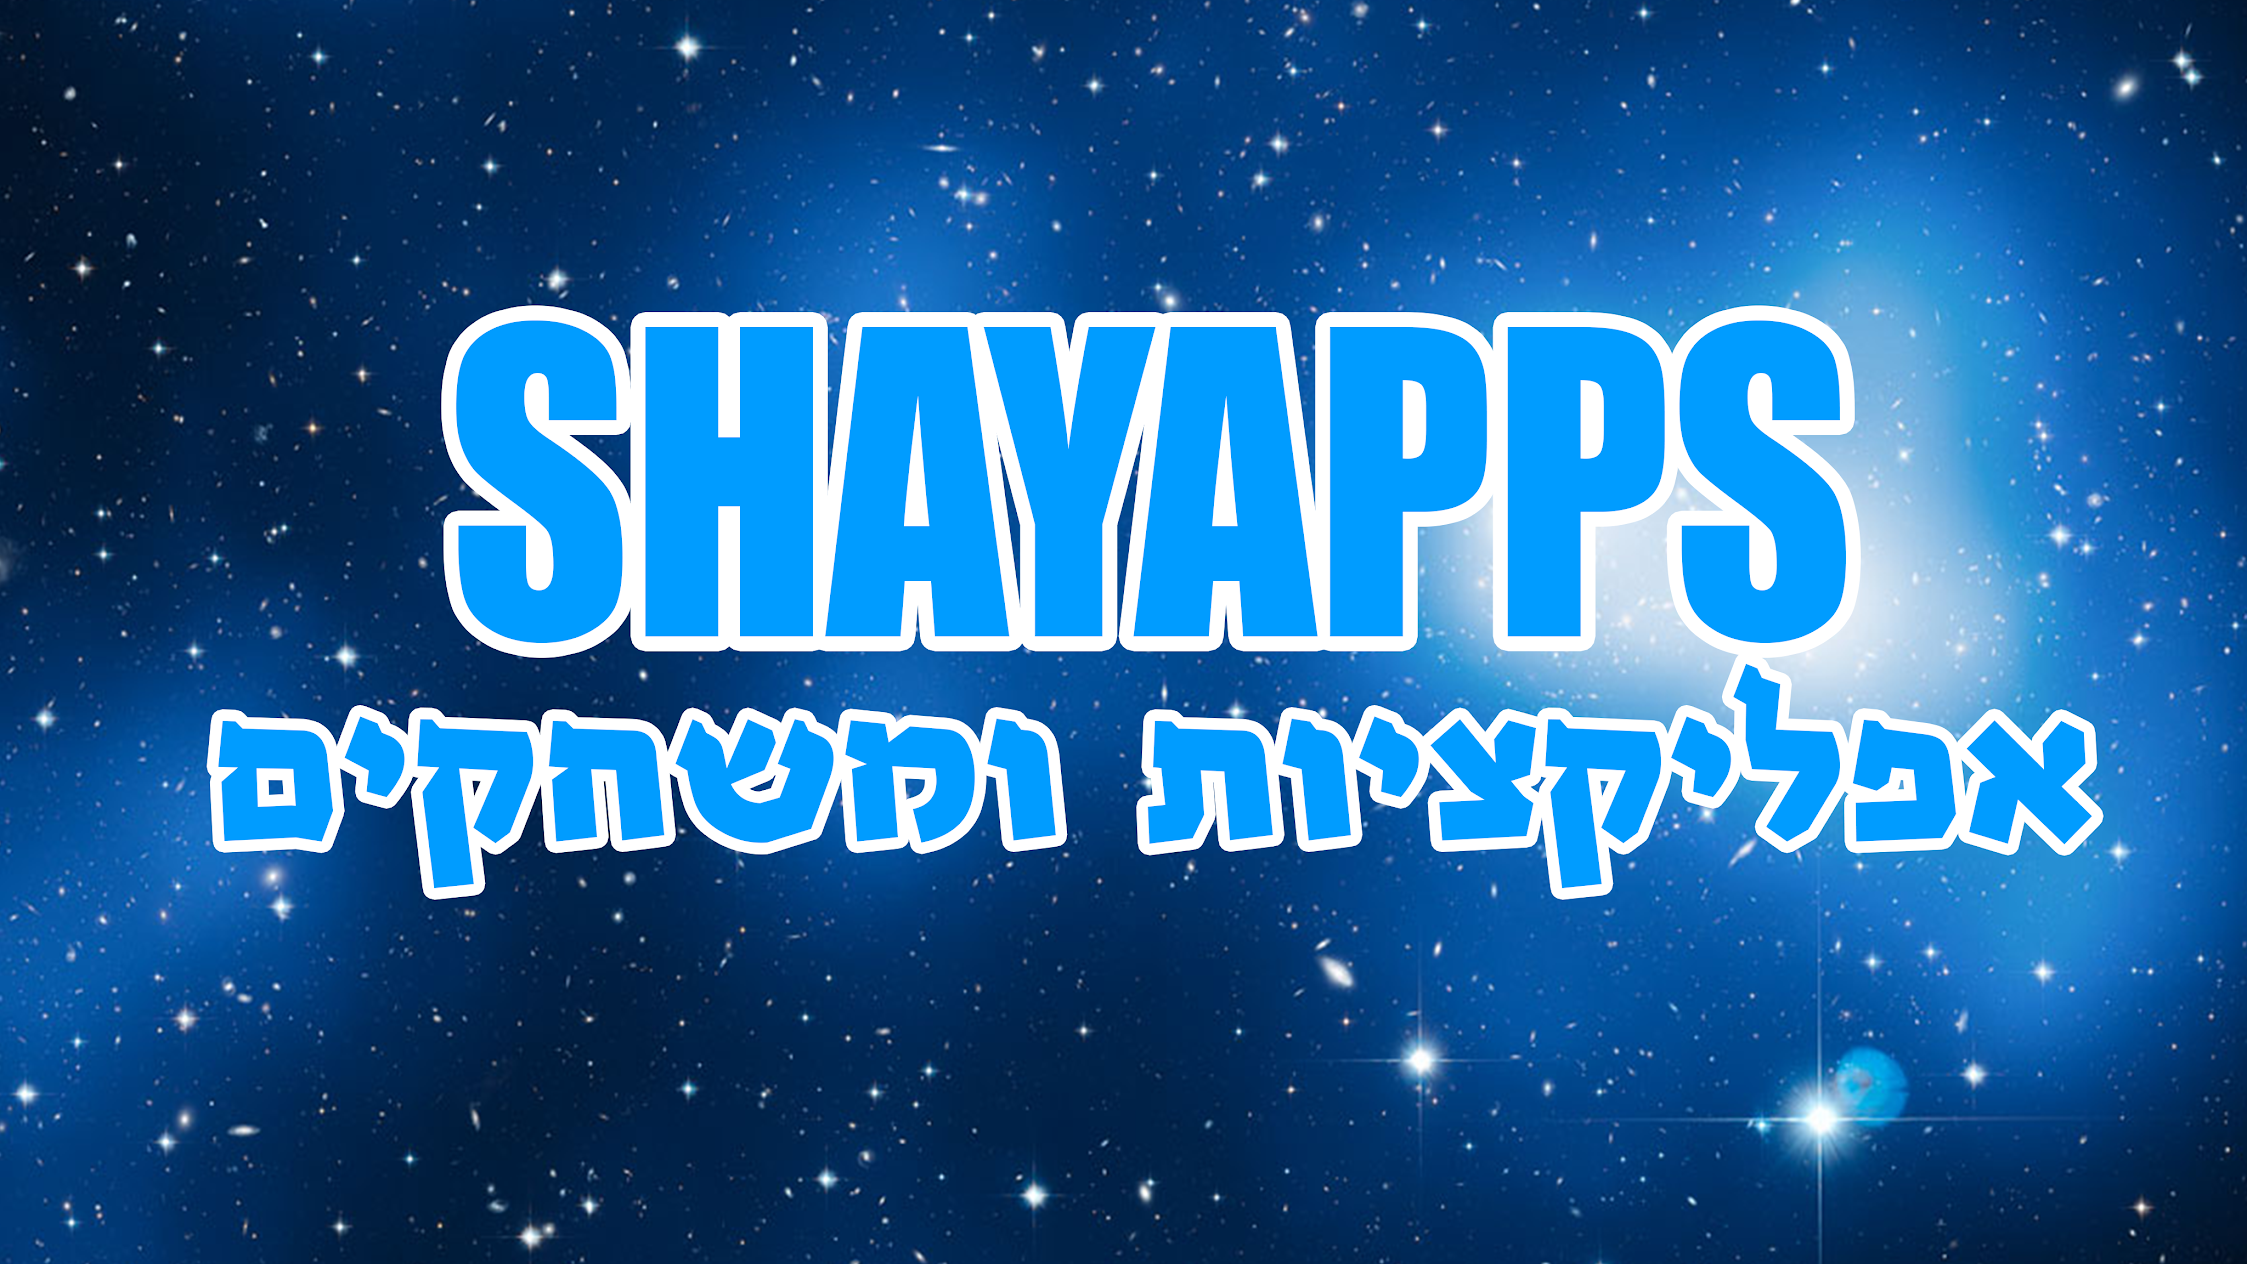 Shayshvartz apps